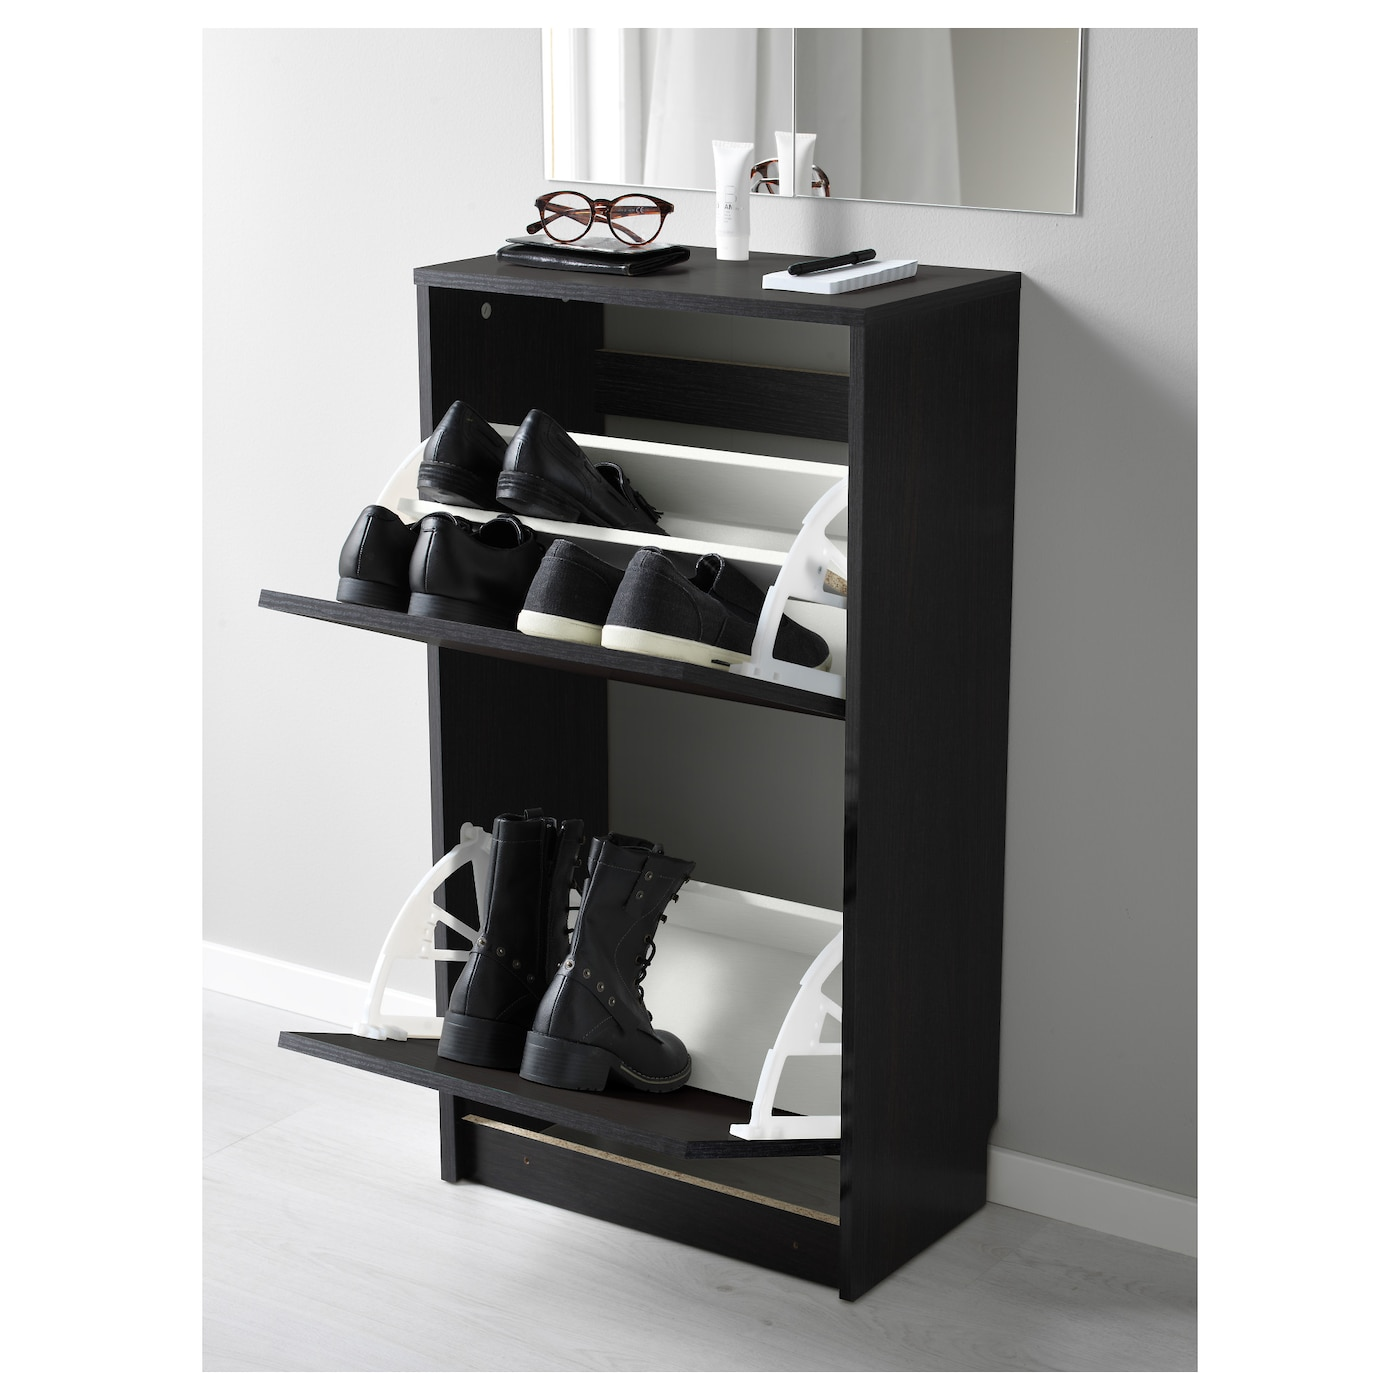 bissa armoire chaussures 2 casiers noir brun 49x93 cm ikea. Black Bedroom Furniture Sets. Home Design Ideas